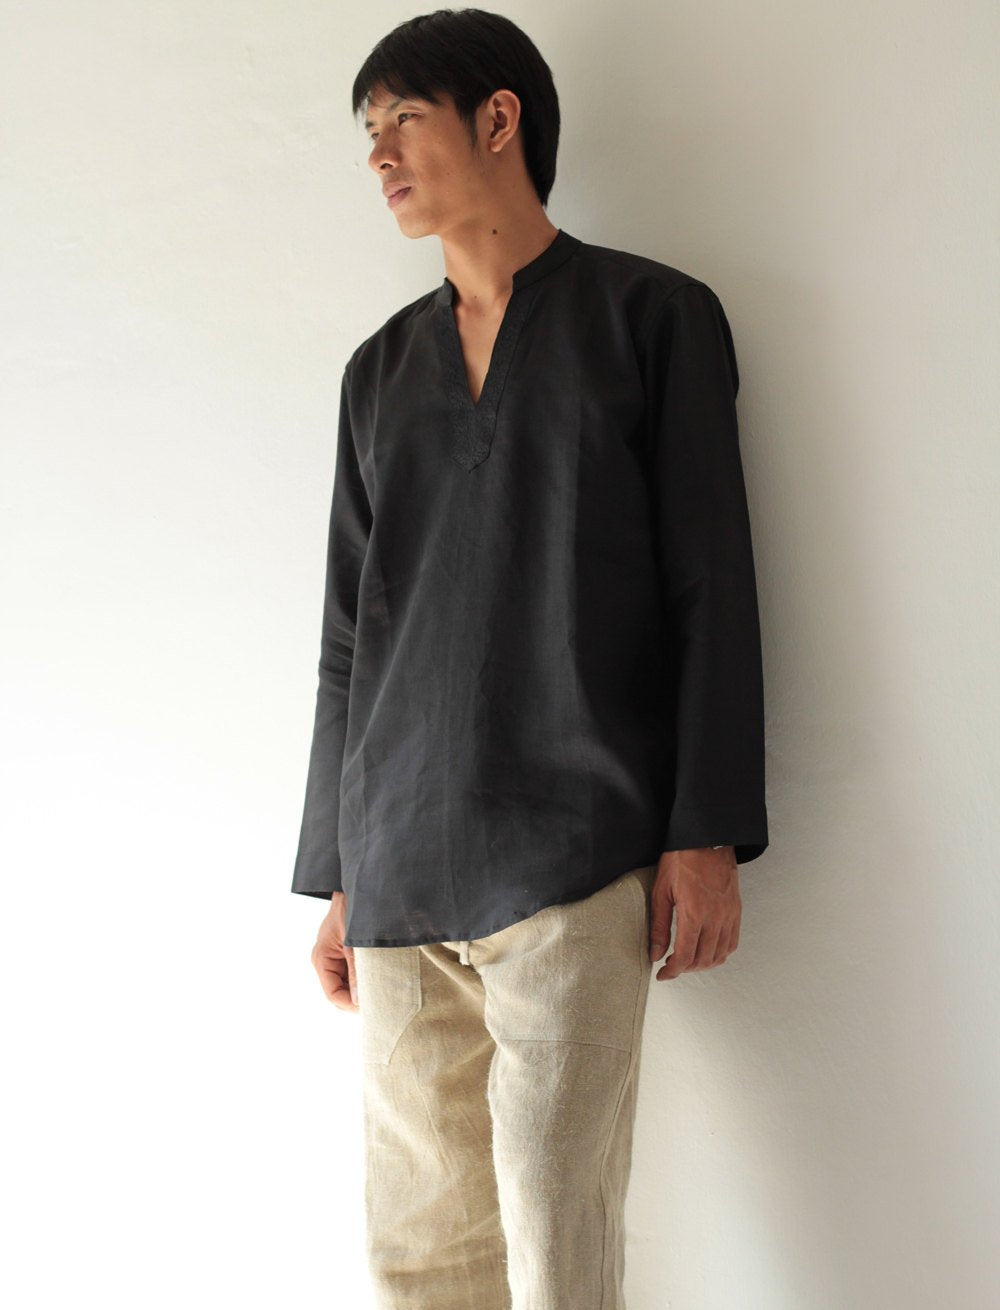 No.5705 Bohemian Outfit 100% Linen long sleeve men's shirt